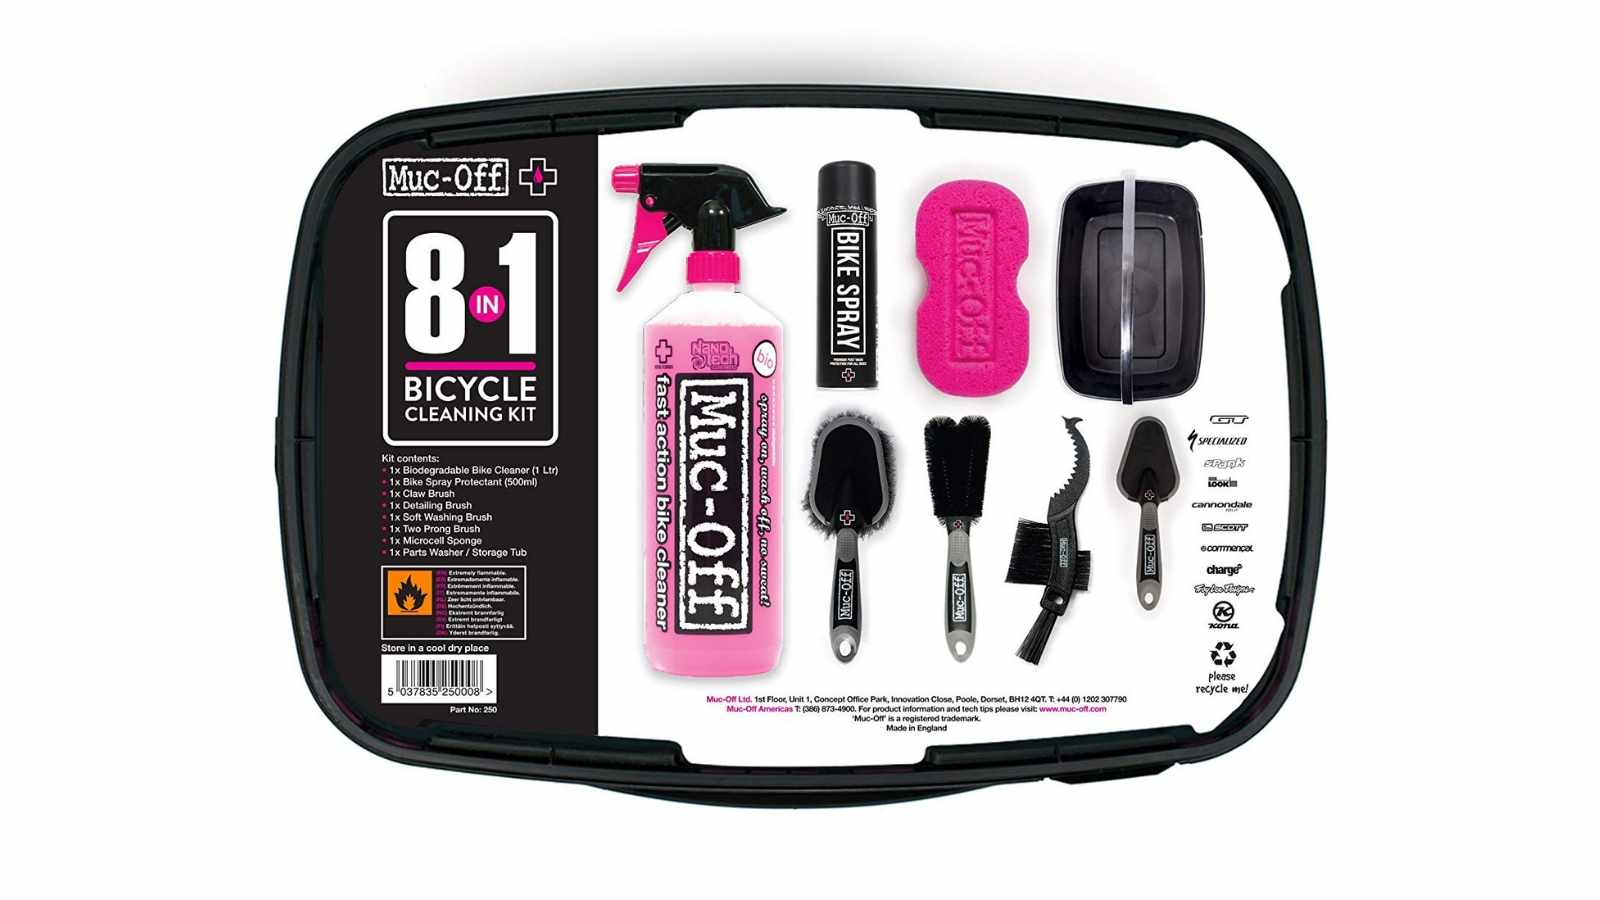 The Muc-Off 8-in-1 kit has everything you should need to get your bike ready for spring